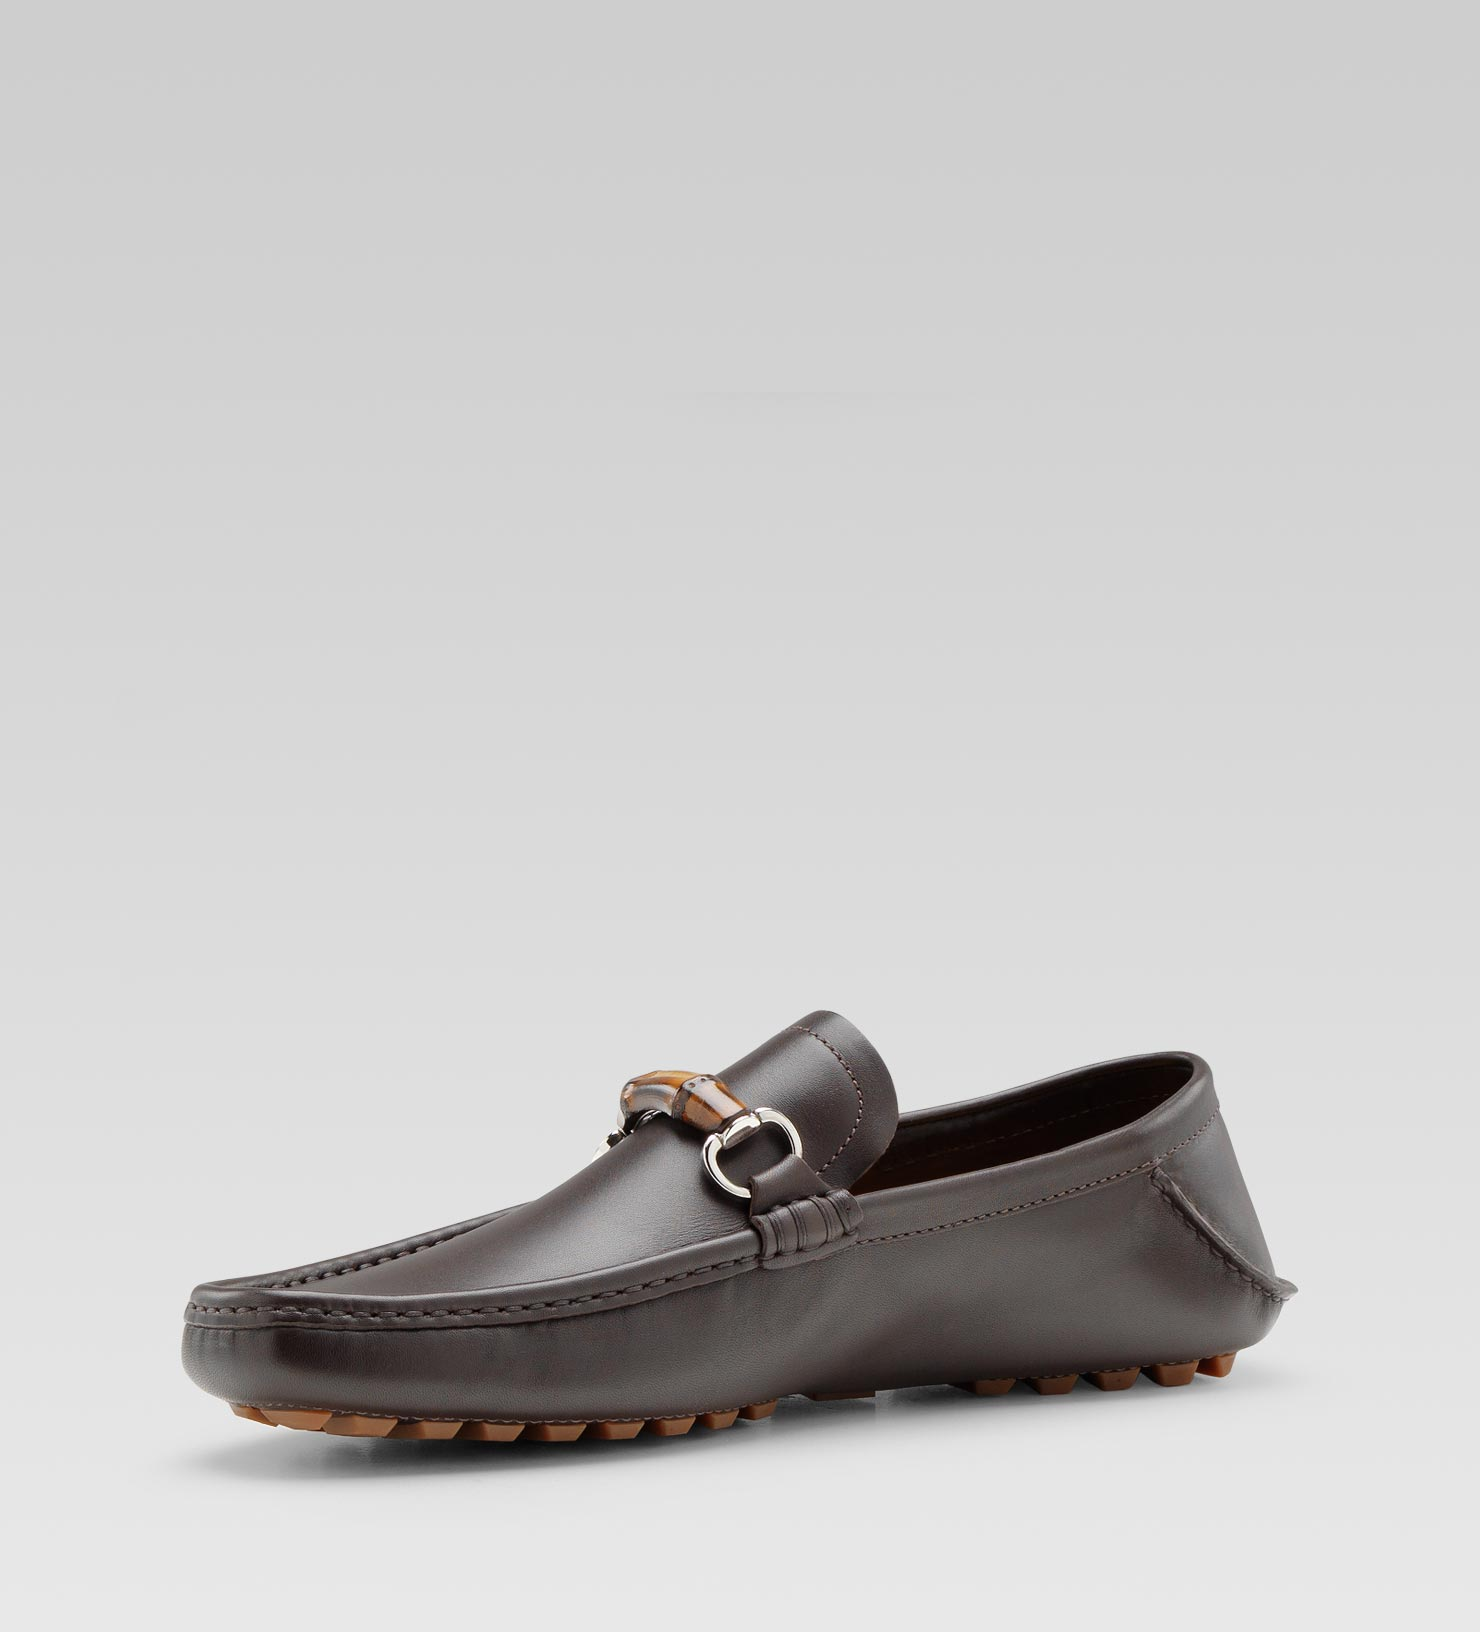 dc9f397bafa Lyst - Gucci Moccasin with Bamboo Horsebit in Brown for Men